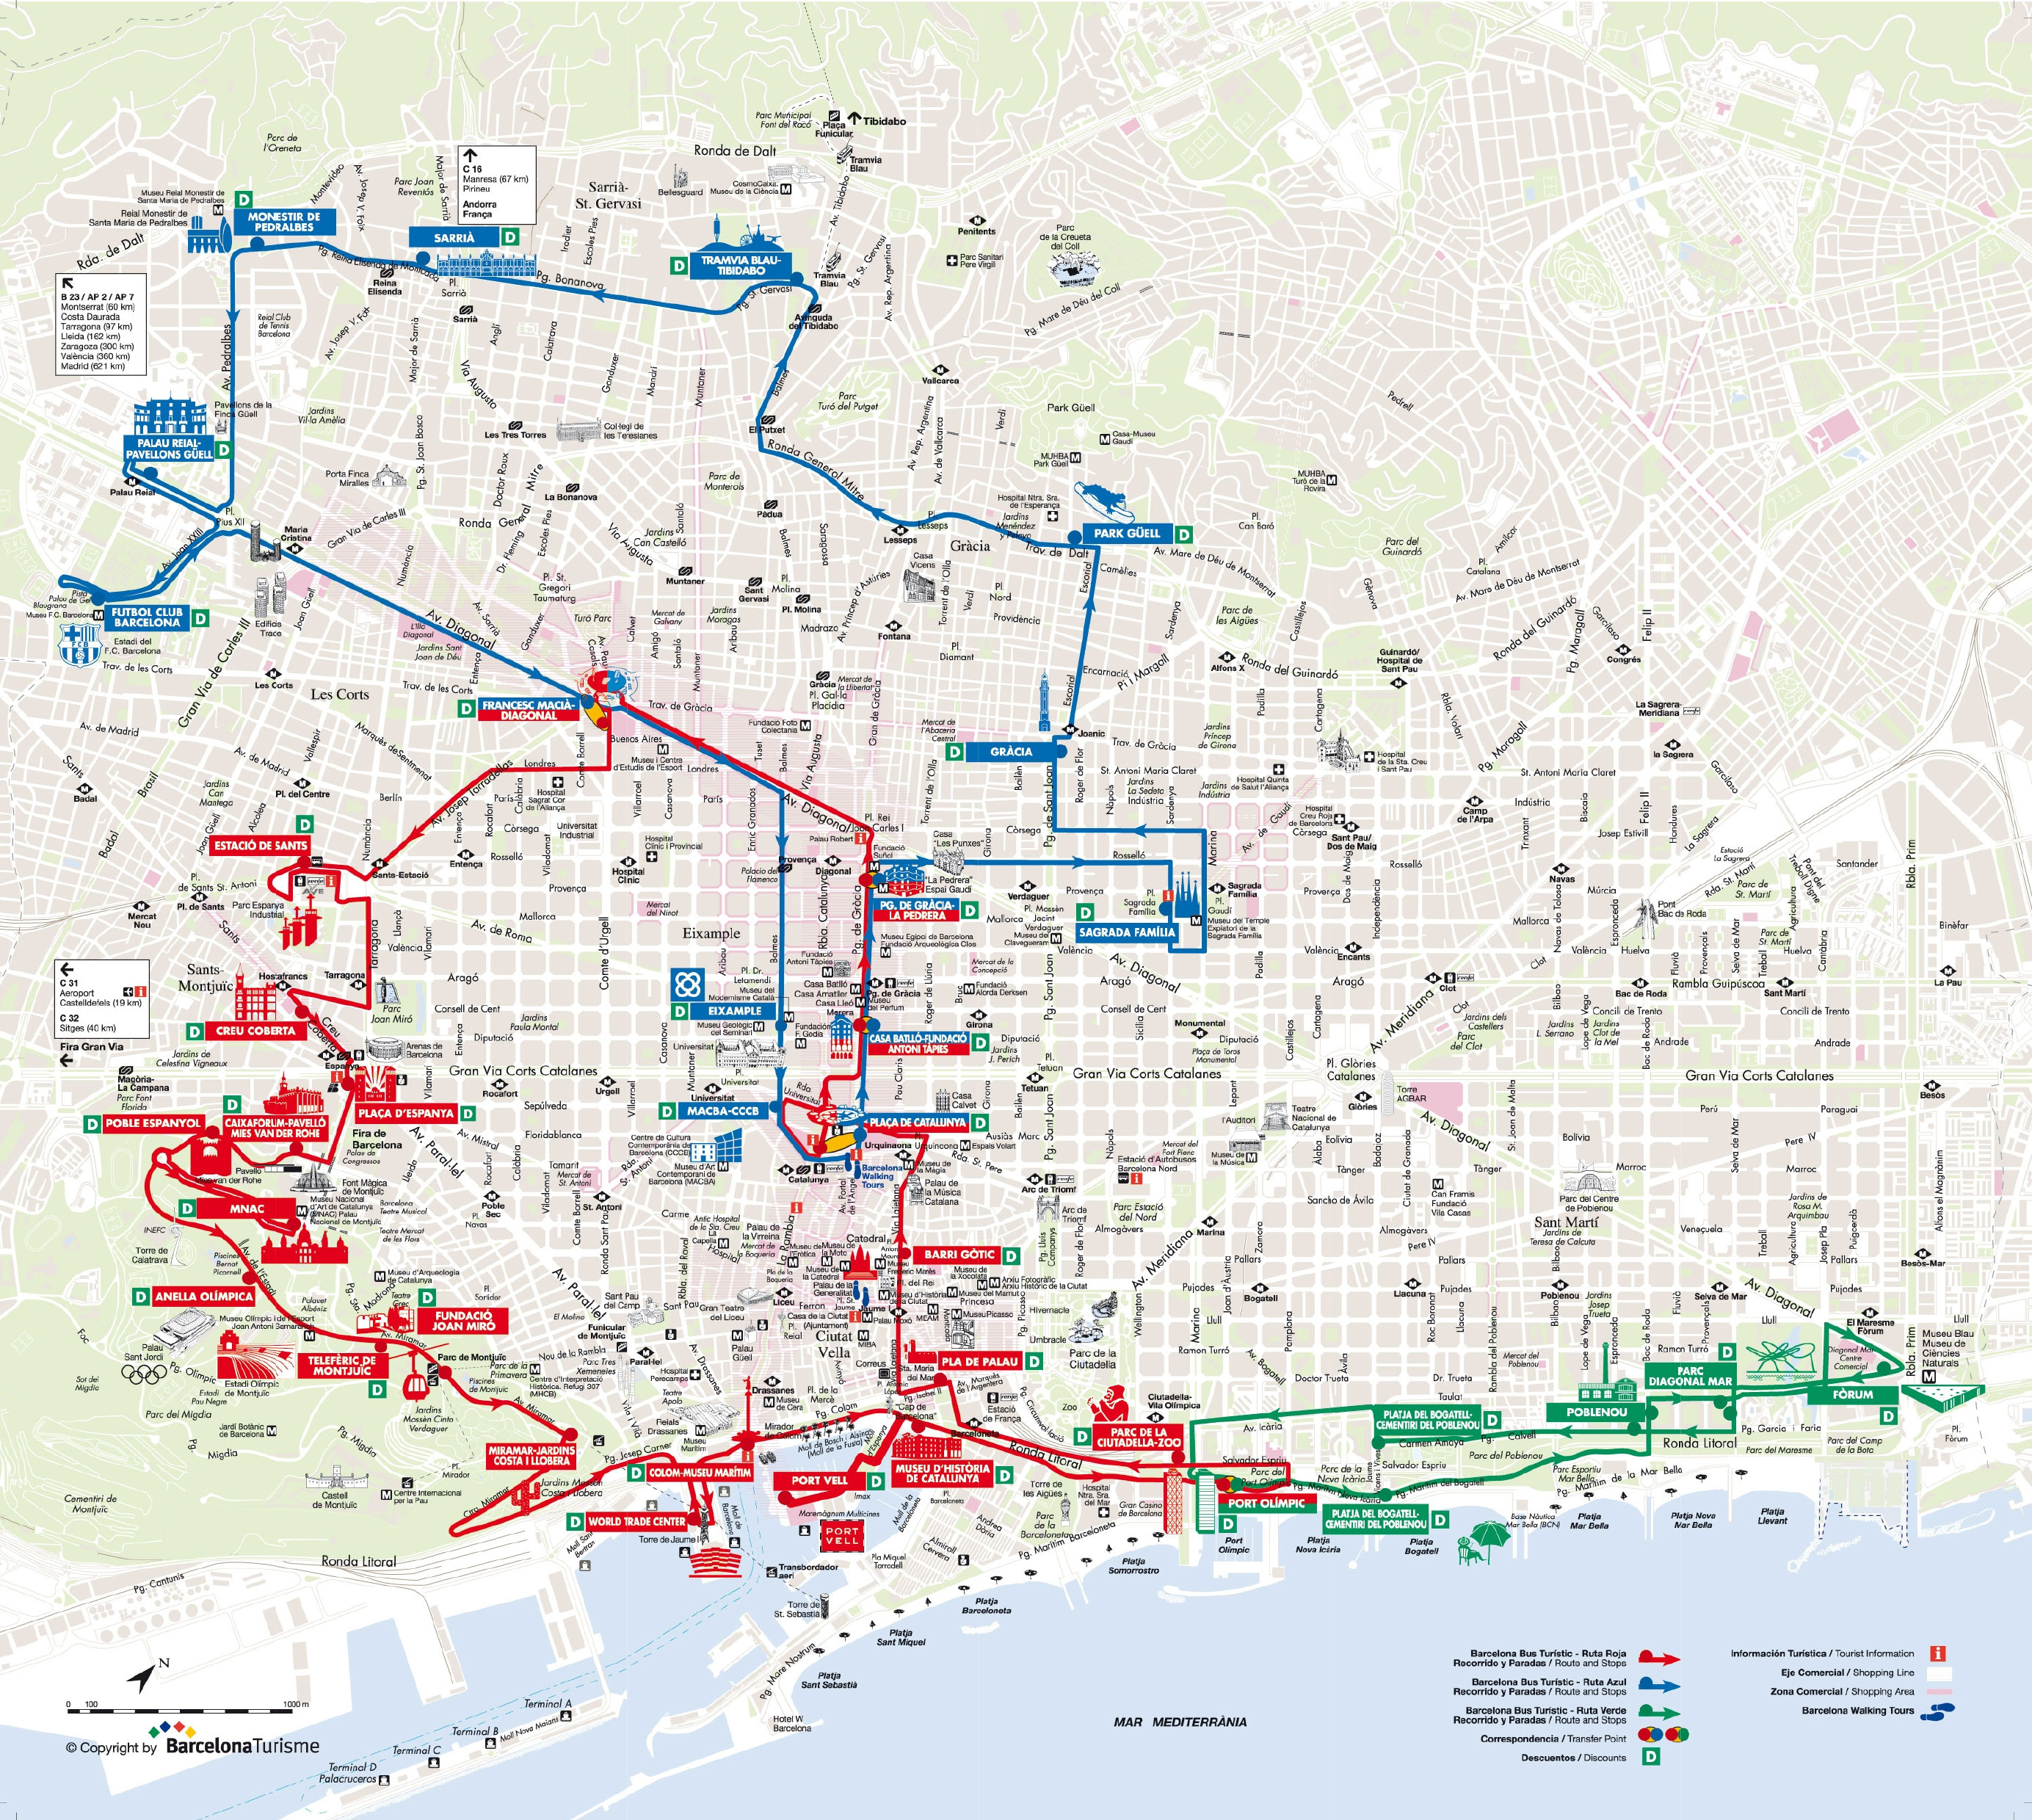 Carte Barcelone Telecharger.Plan Et Carte Touristique De Barcelone Monuments Et Circuits